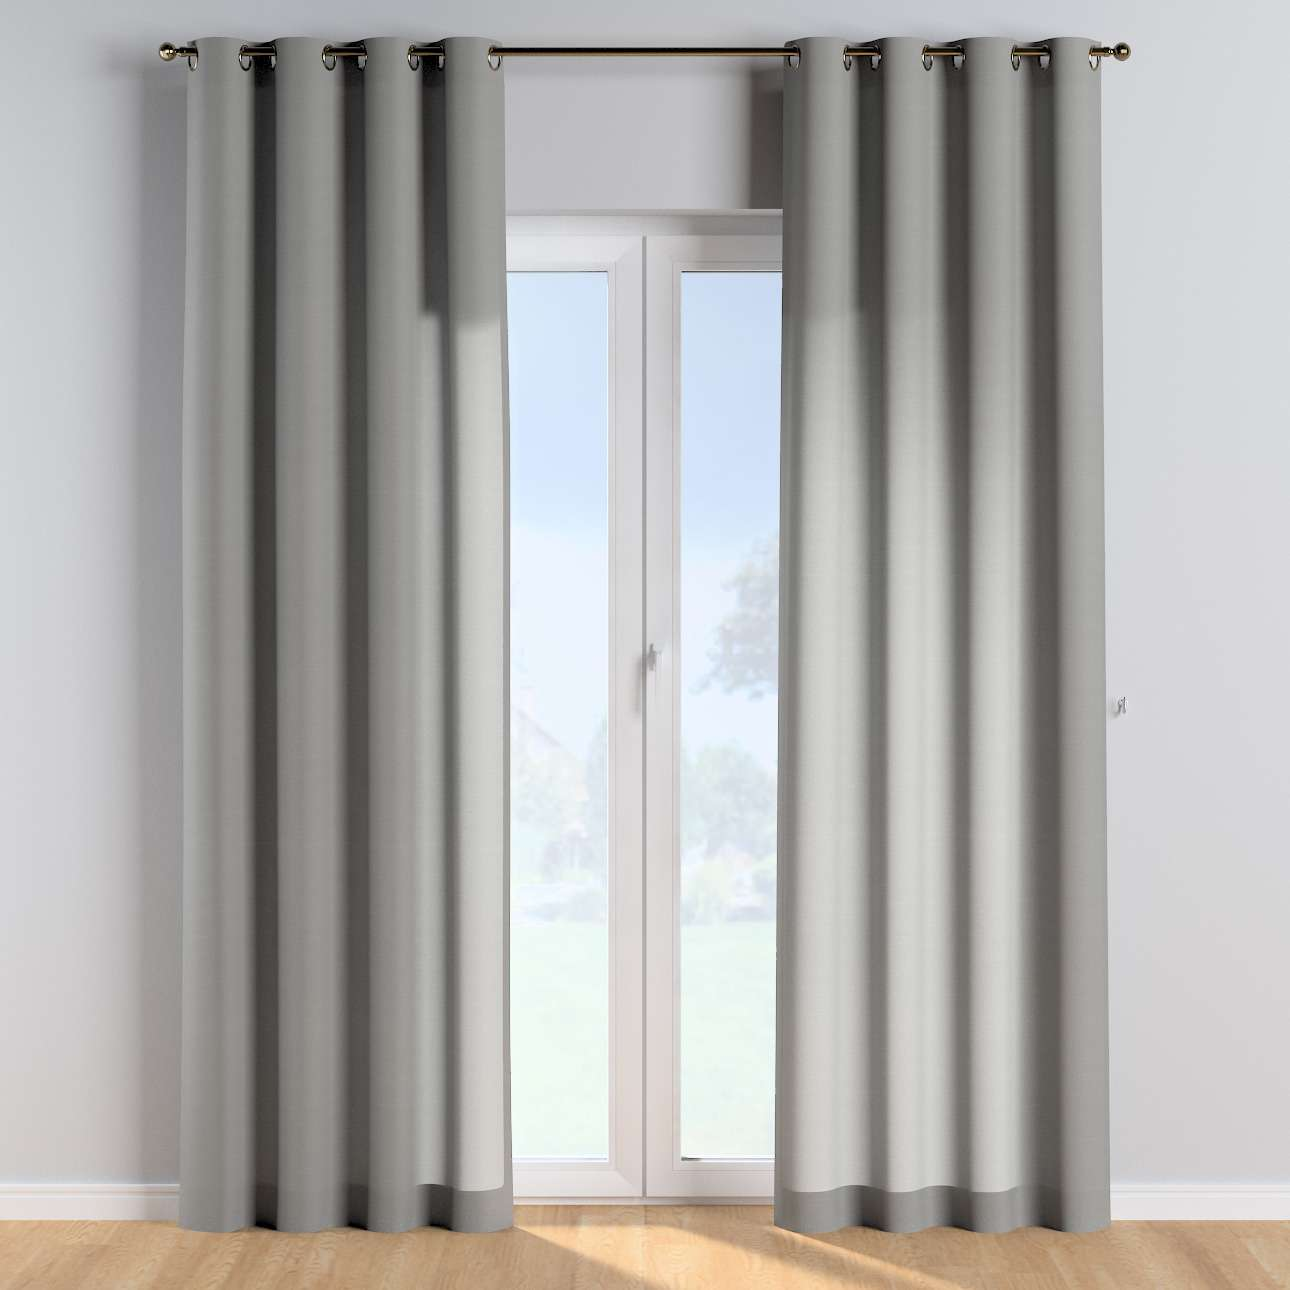 Eyelet curtains in collection Happiness, fabric: 133-24